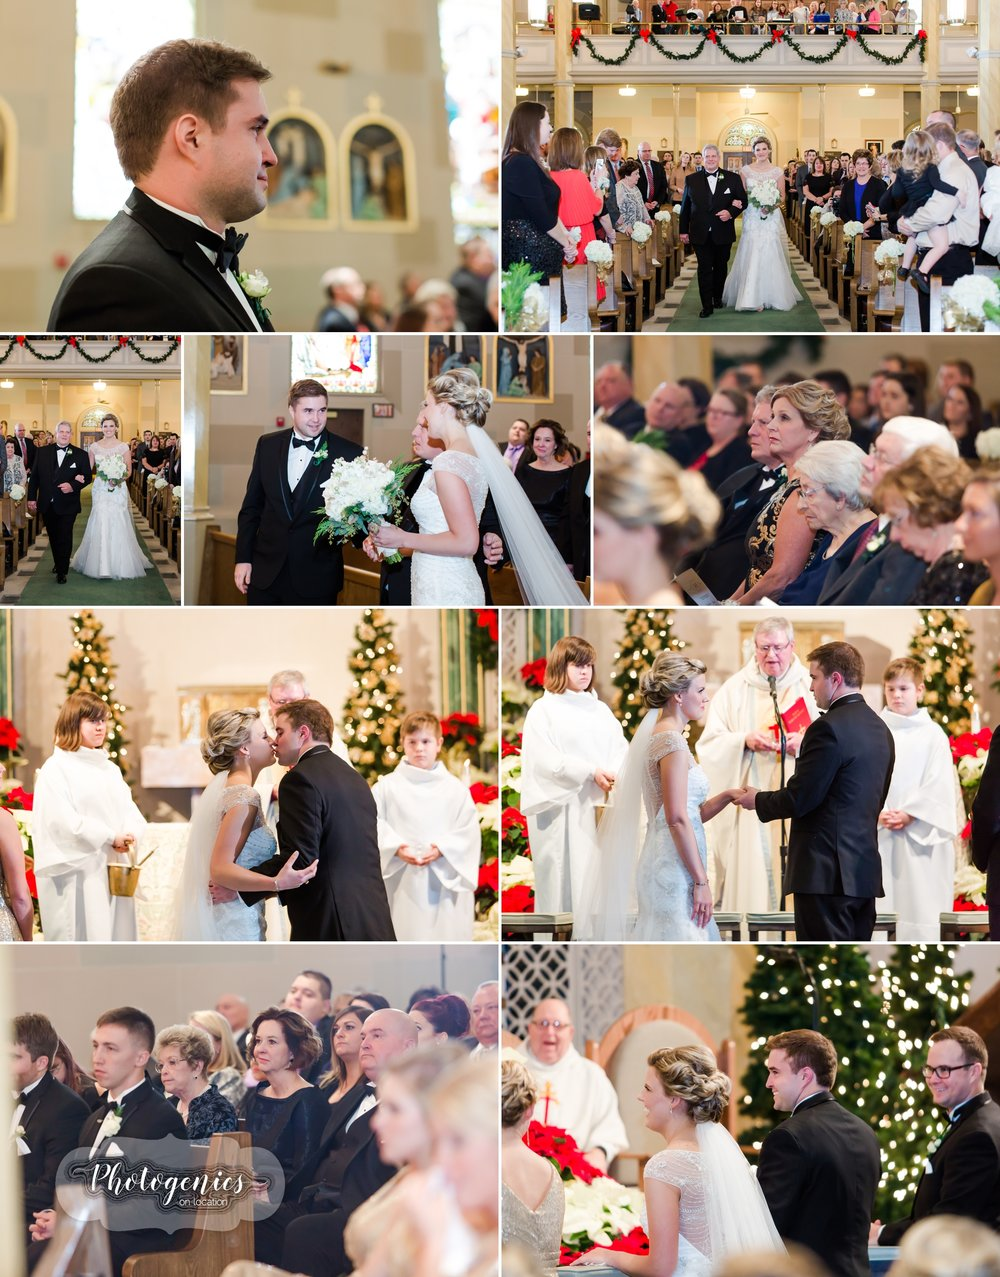 nye_wedding_new_years_eve_ceremony_church_shots_photography 7